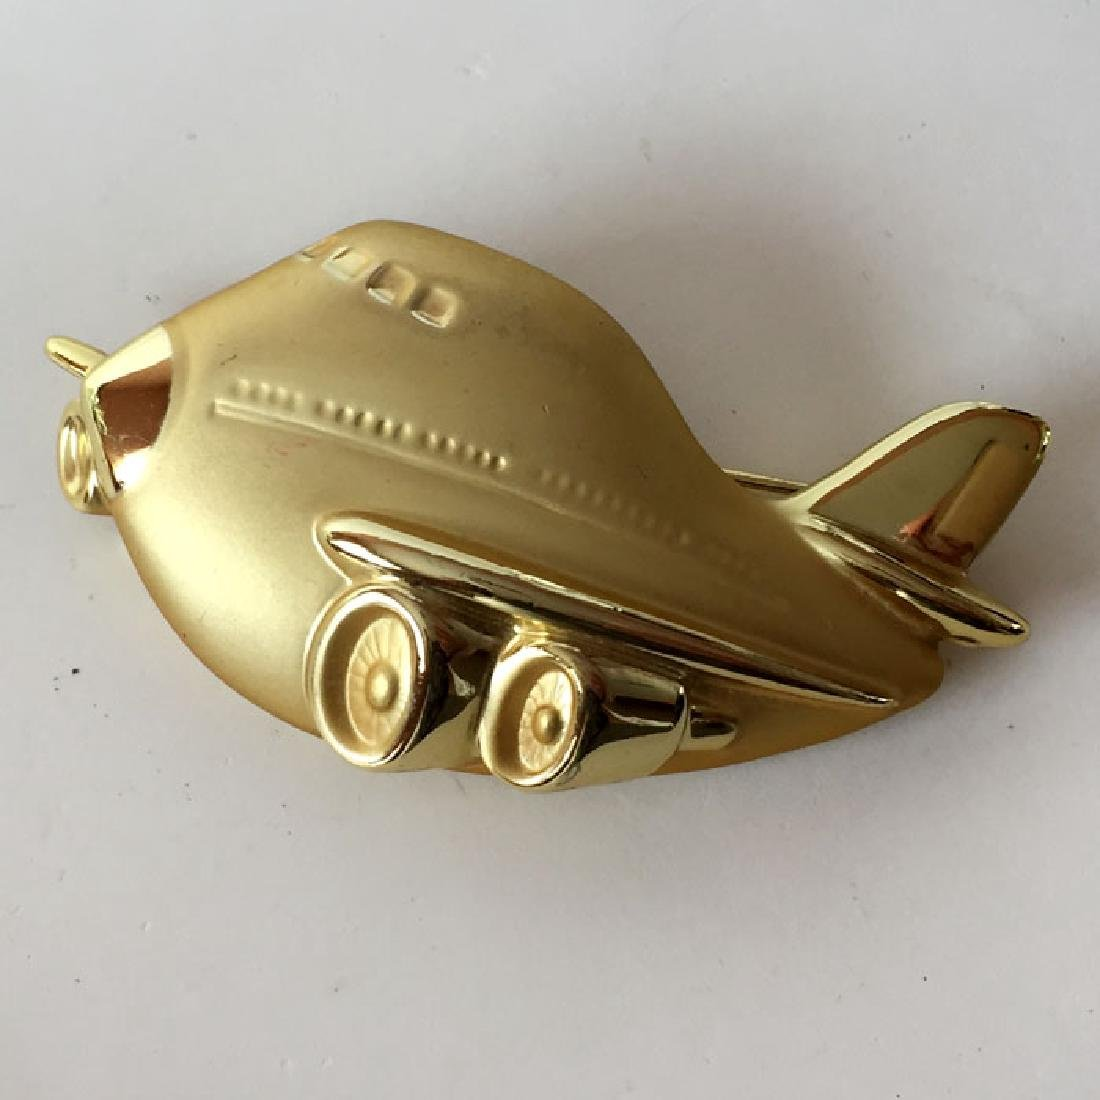 A.J.C.: Gold plated satin and shiny finish PLANE shaped